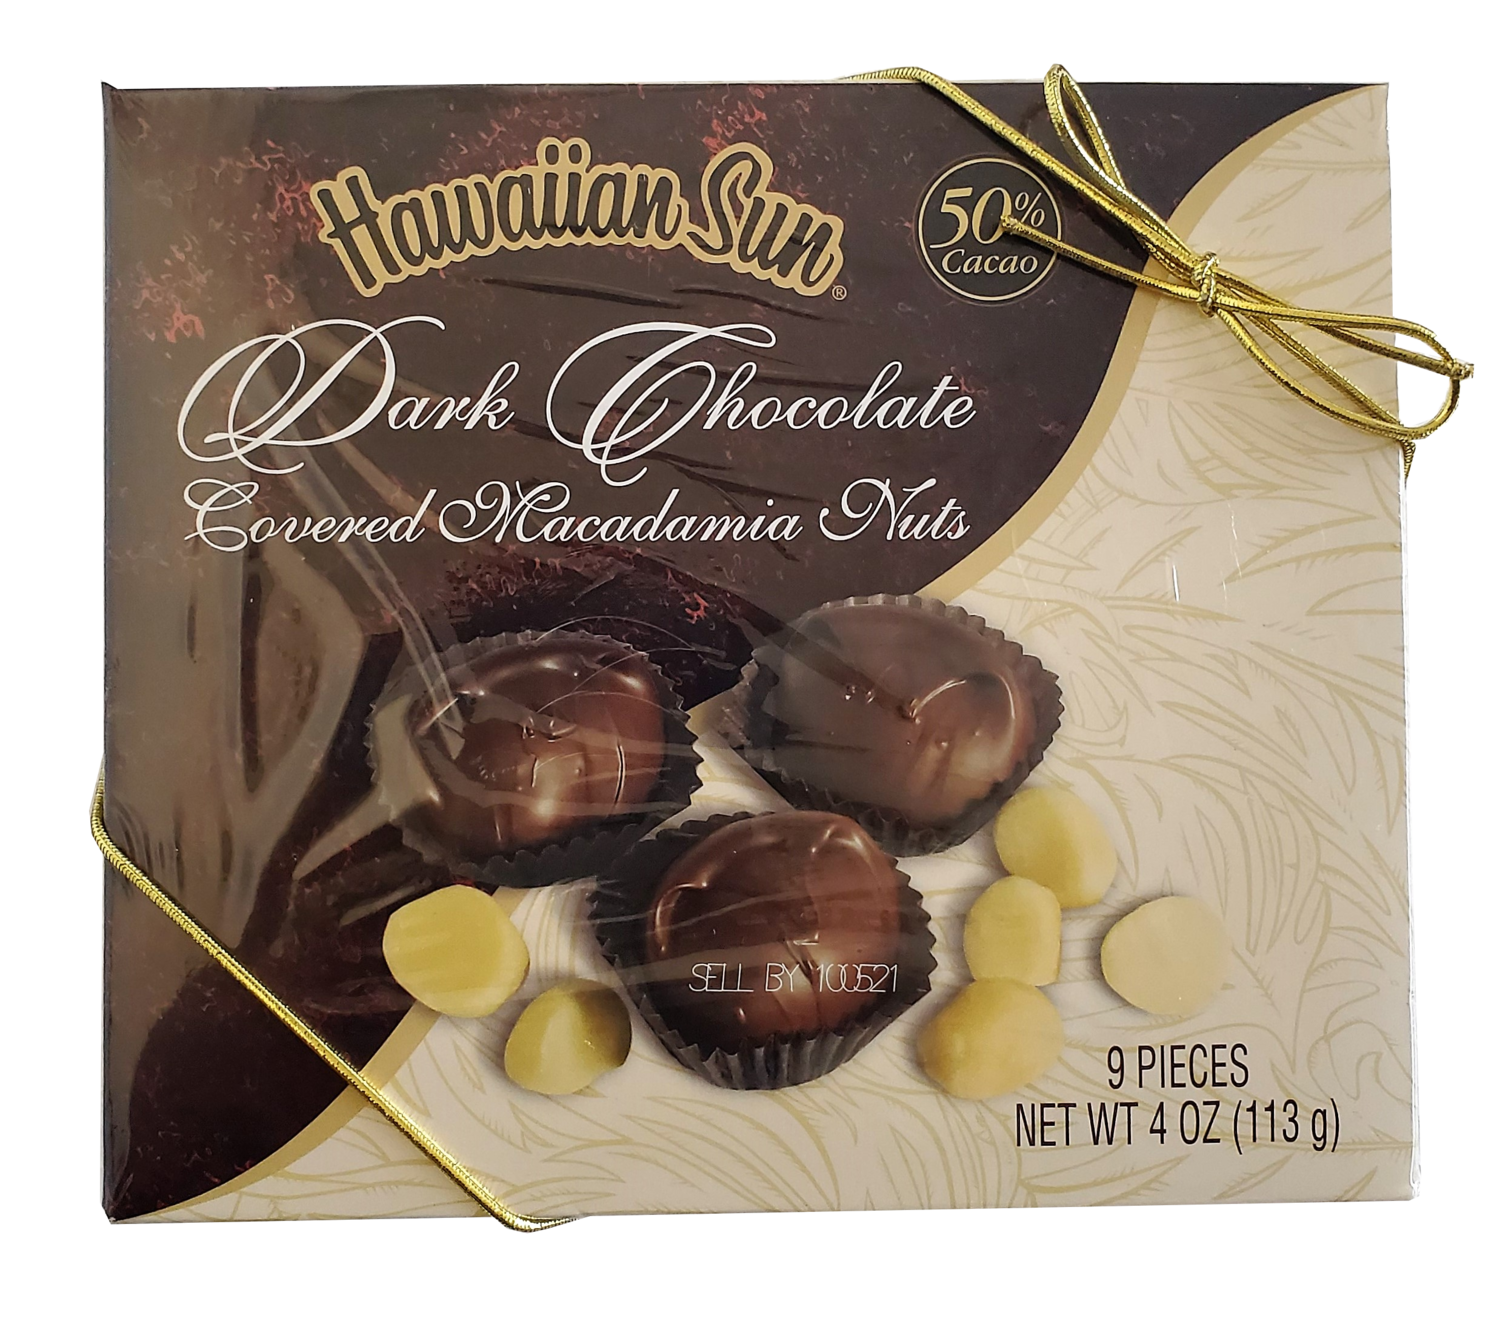 Hawaiian Sun Dark Chocolate Covered Macadamia Nuts 50% Cacao   4oz.